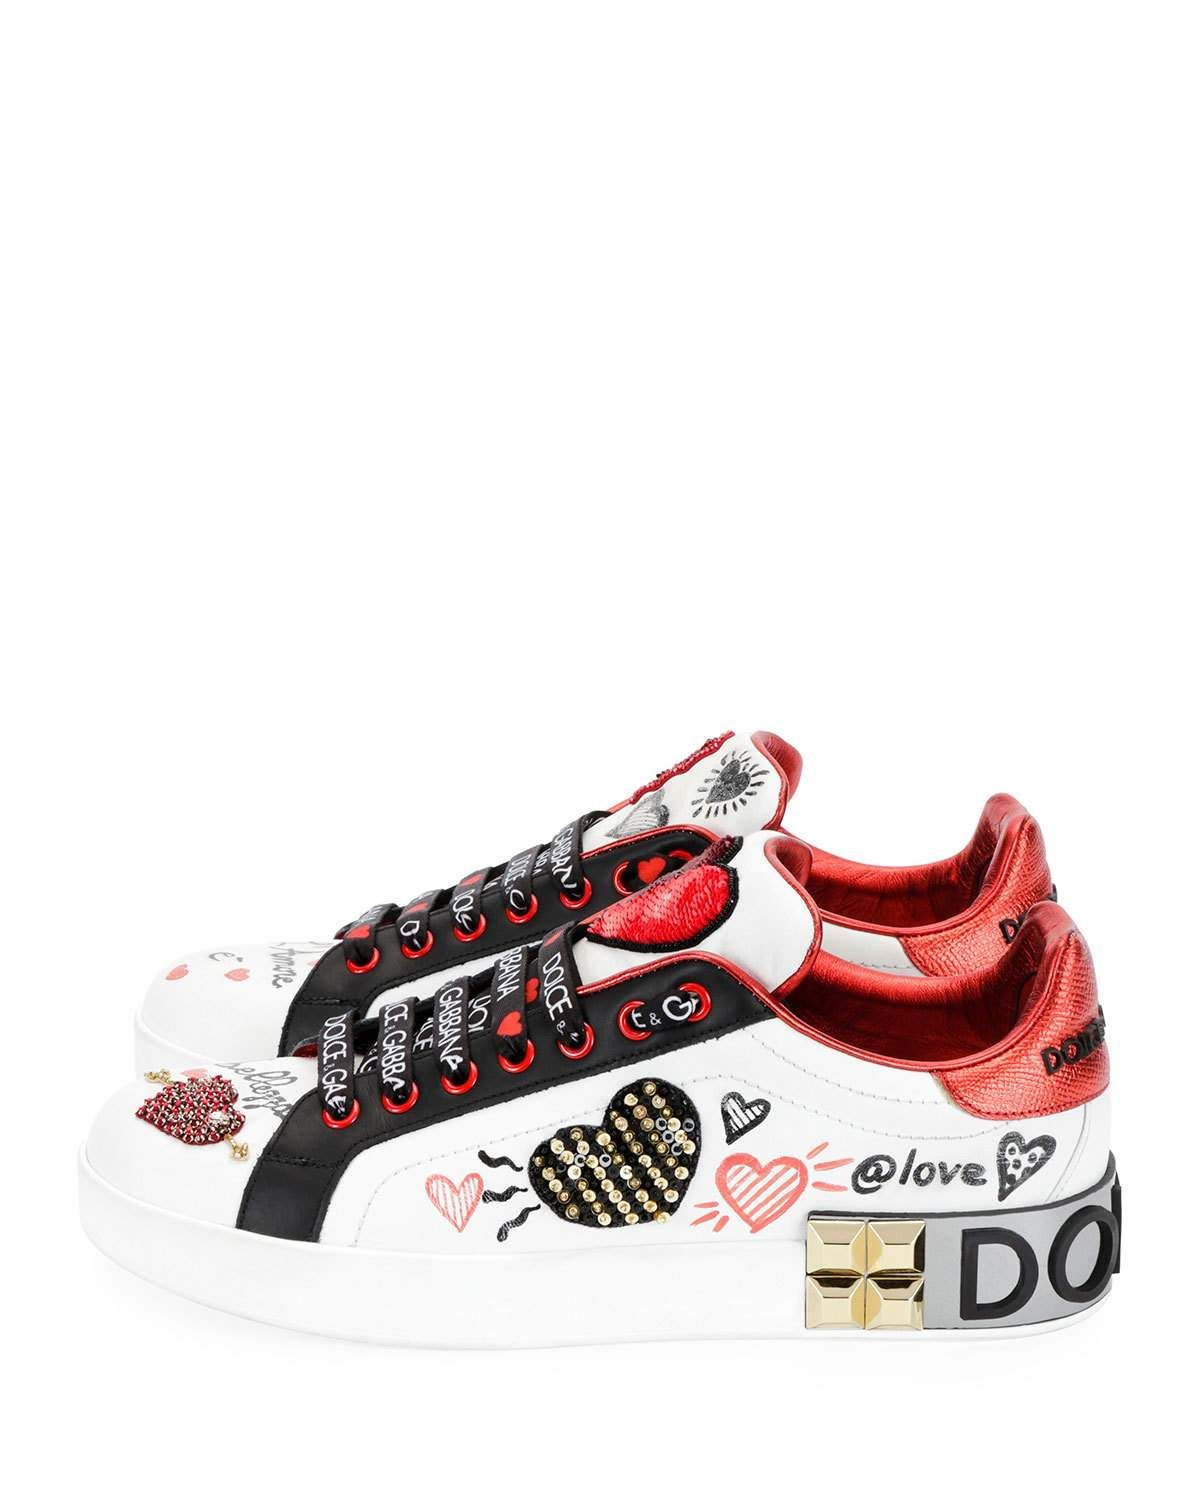 674be075 Dolce & Gabbana Leather Low-Top Sneakers with Graffiti Hearts ...